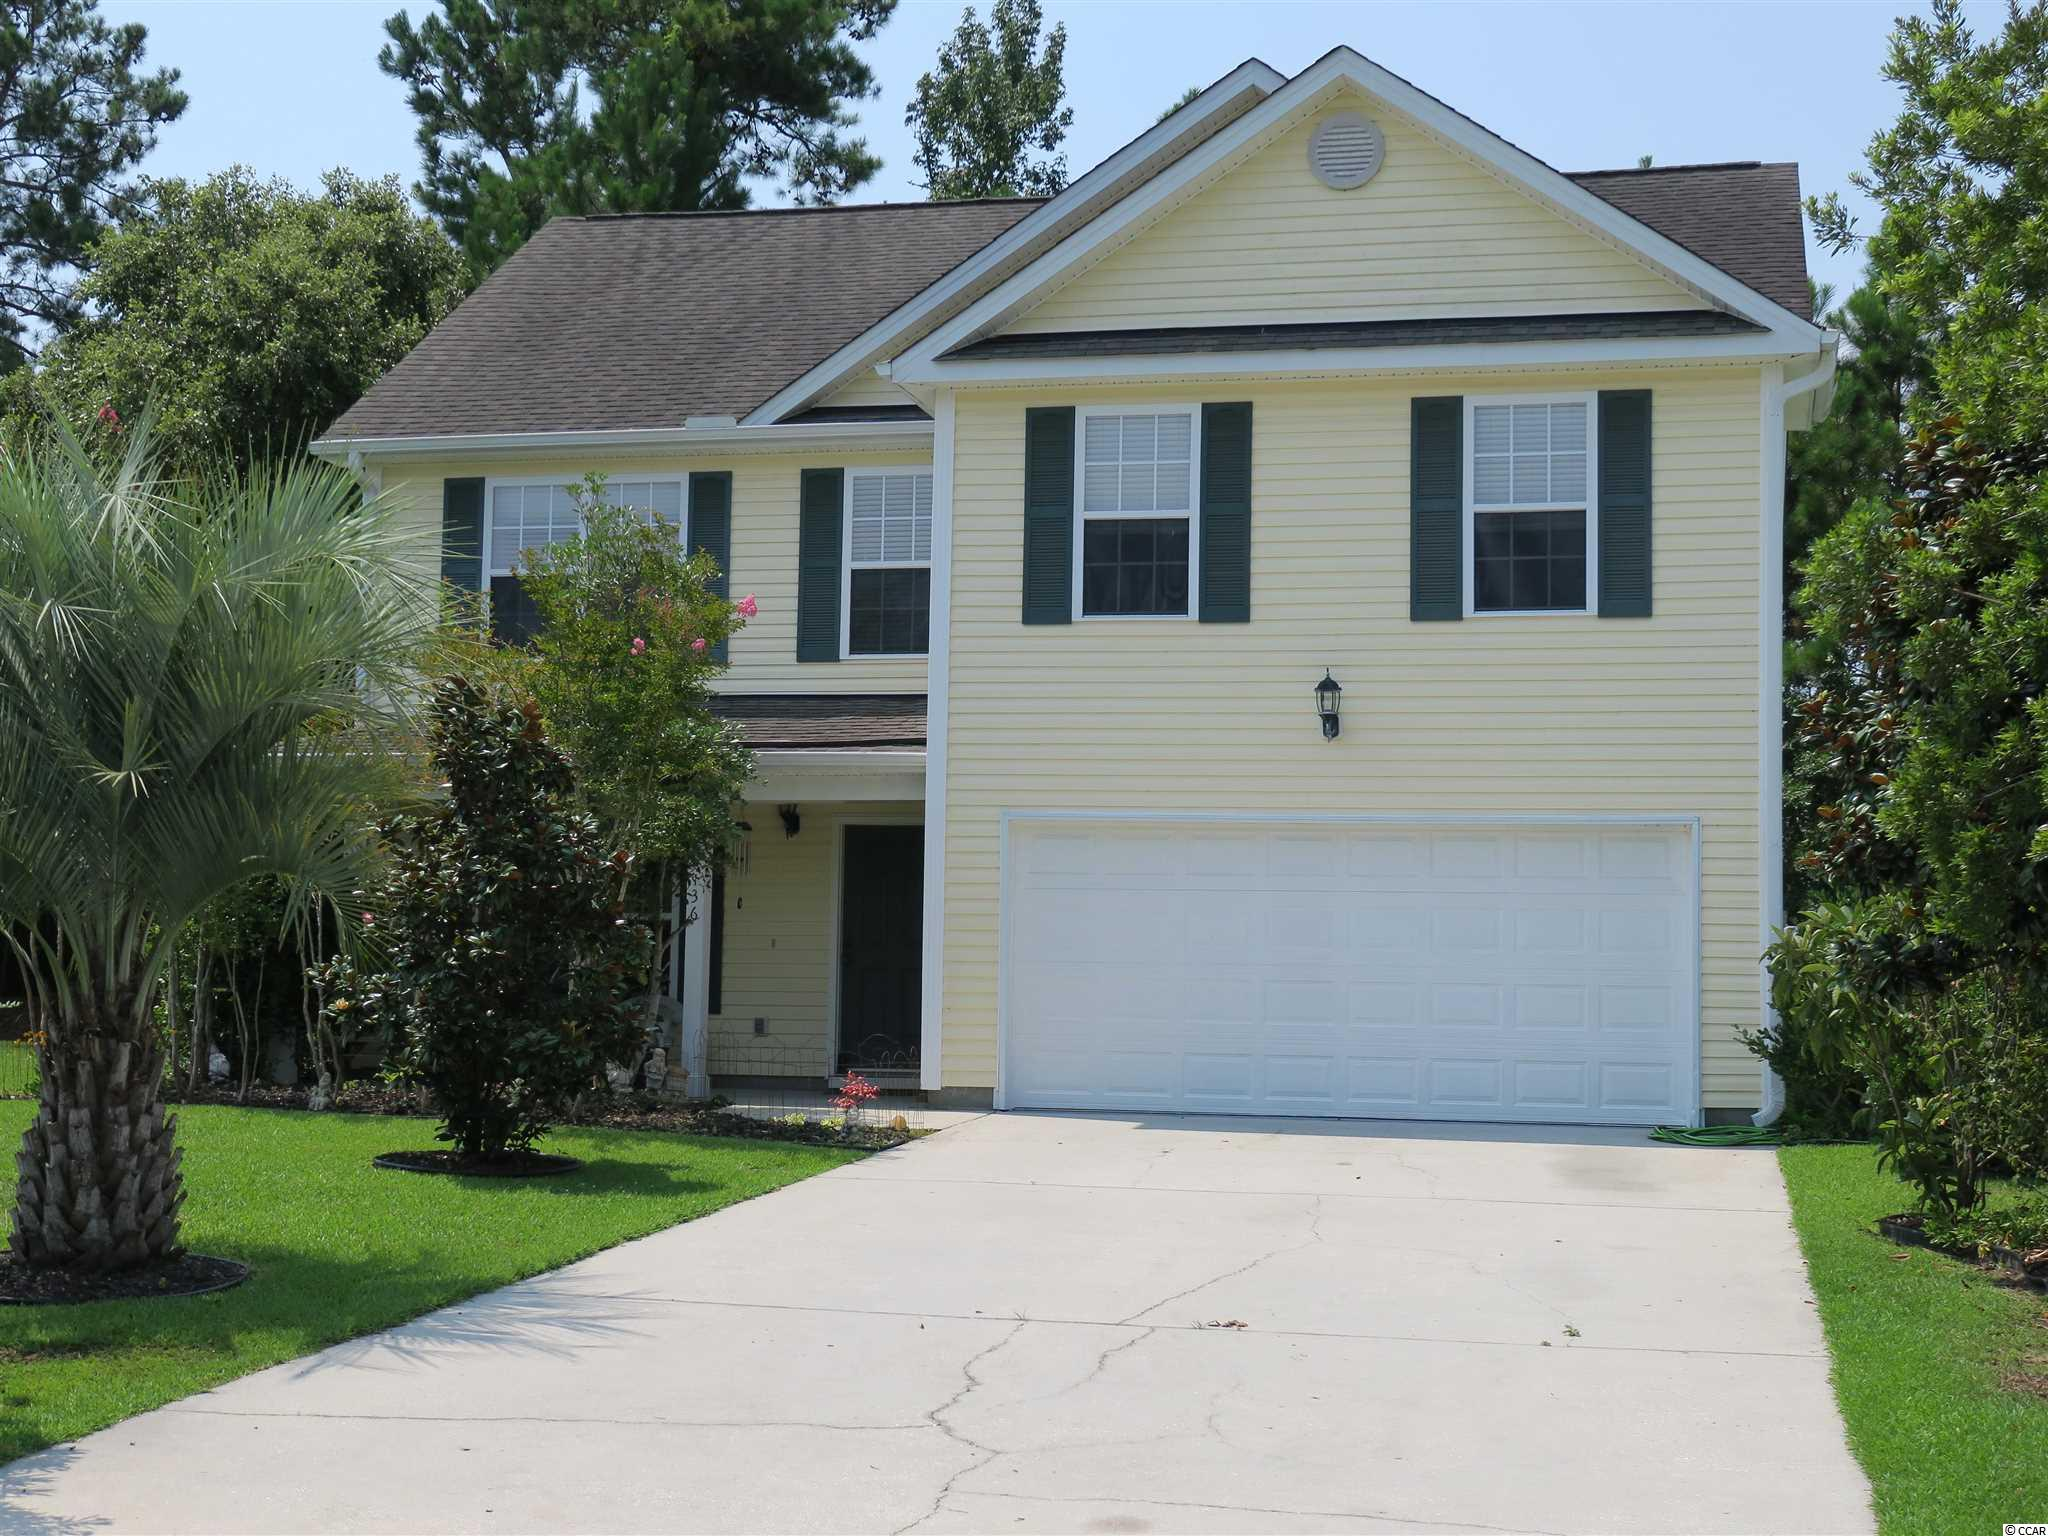 A very clean, well maintained spacious home located just minutes away from grocery stores, gas stations, restaurants, and of course the Marsh Walk and our beautiful beaches. All the renowned St. James Schools are within a few miles of this location and a quick trip to Myrtle Beach via hwy 707 & 31 make this location ideal for those who wish to enjoy all the Grand Strand has to offer. All four bedrooms are located on the second floor and are very spacious with ample closet space for all your things. The master has two walk in closets (his & hers) so there won't be any arguing over who's taking up most of the space. All the upstairs carpet is new and most of the walls throughout the home have been freshly painted. The garage is immaculate and can easily handle two cars. Please do yourself a favor and call for a personal viewing or reach out to your Real Estate Professional to schedule a viewing today.